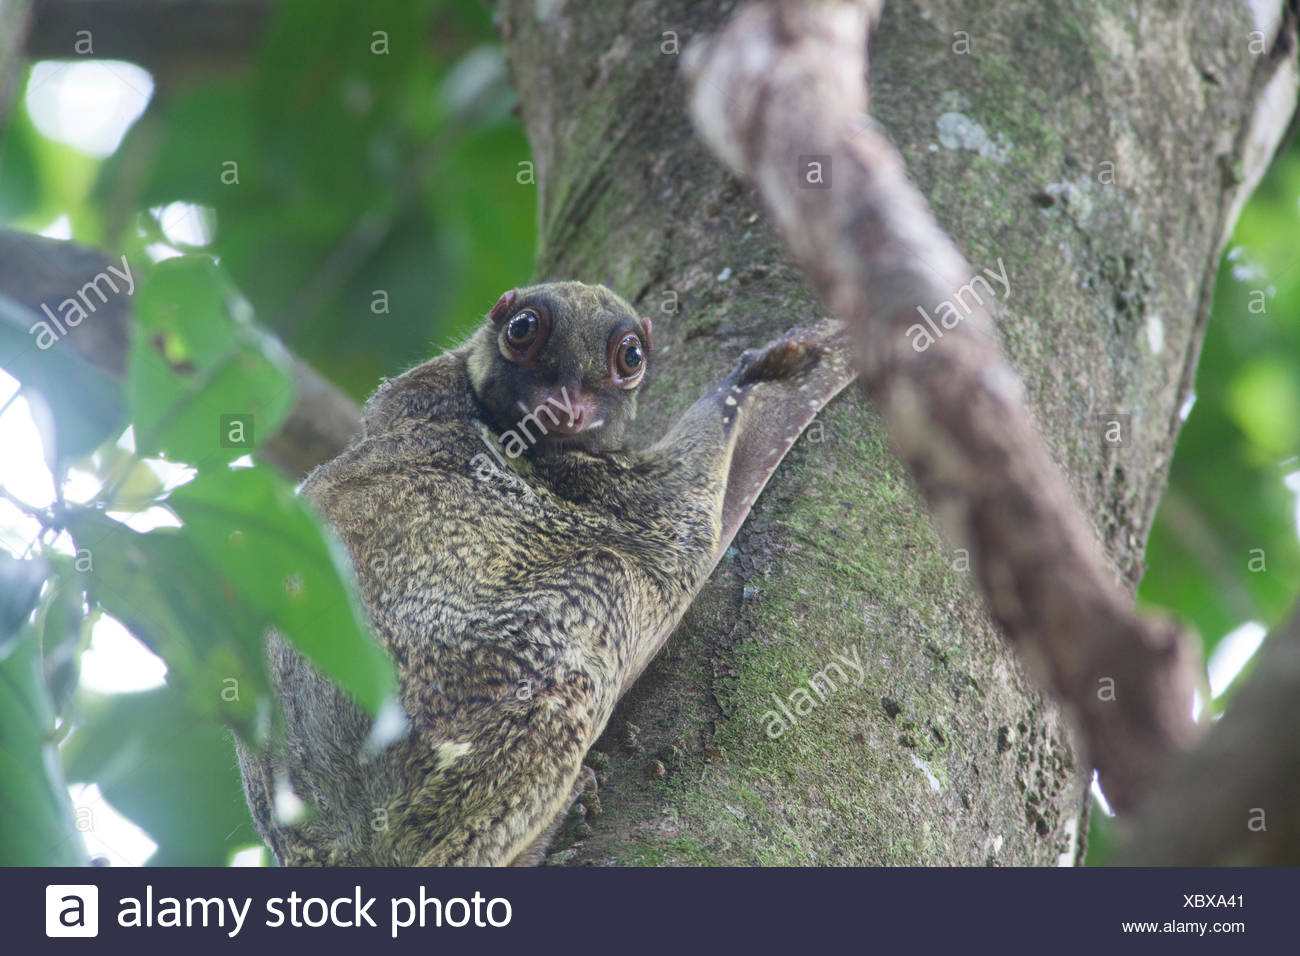 A sunda flying lemur, Galeopterus variegatus, rests in a tree during the day. - Stock Image